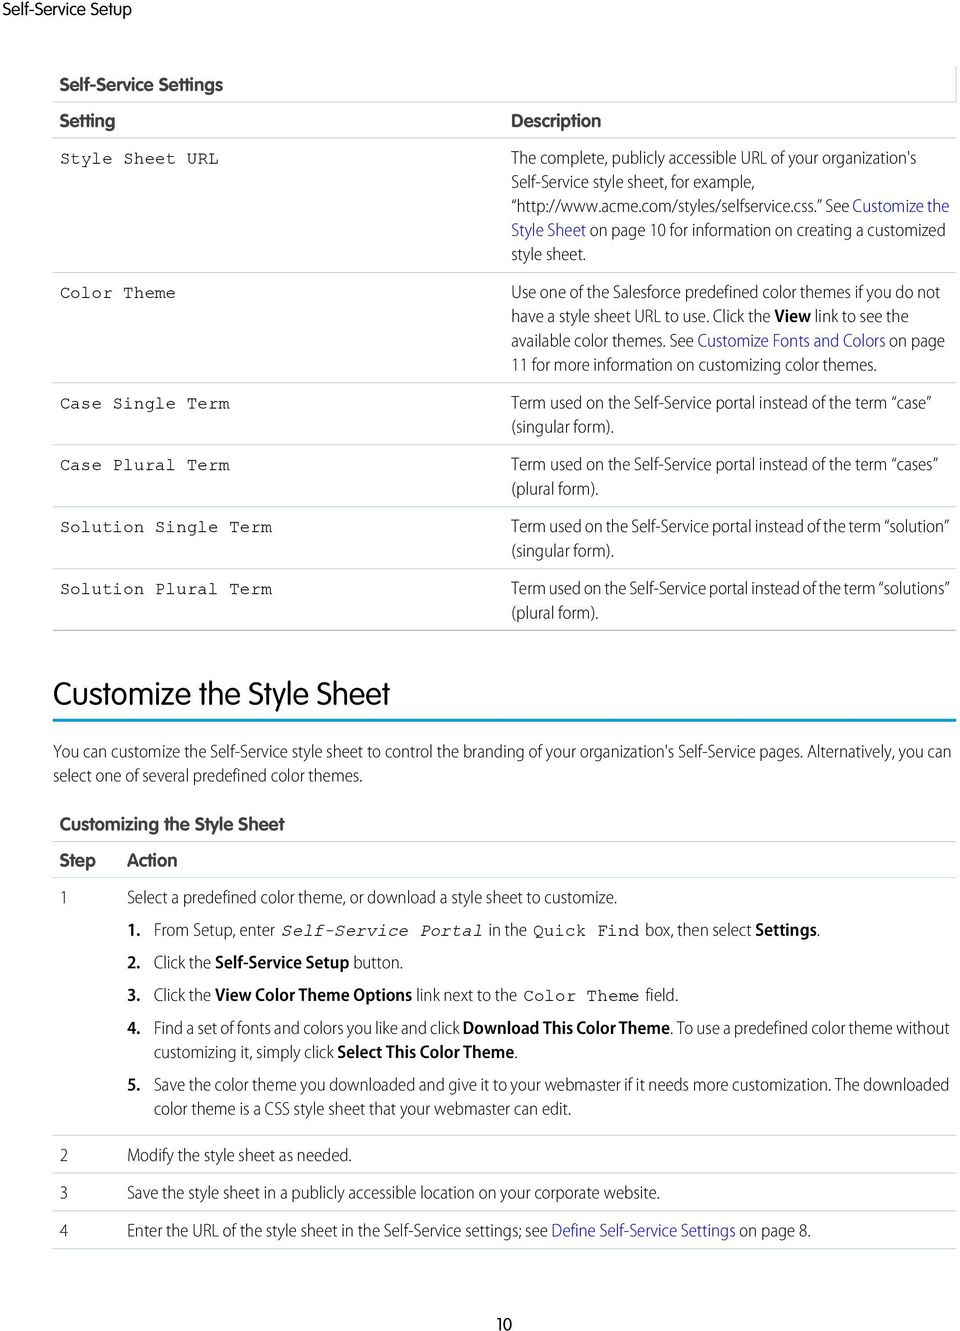 See Customize the Style Sheet on page 0 for information on creating a customized style sheet. Use one of the Salesforce predefined color themes if you do not have a style sheet URL to use.